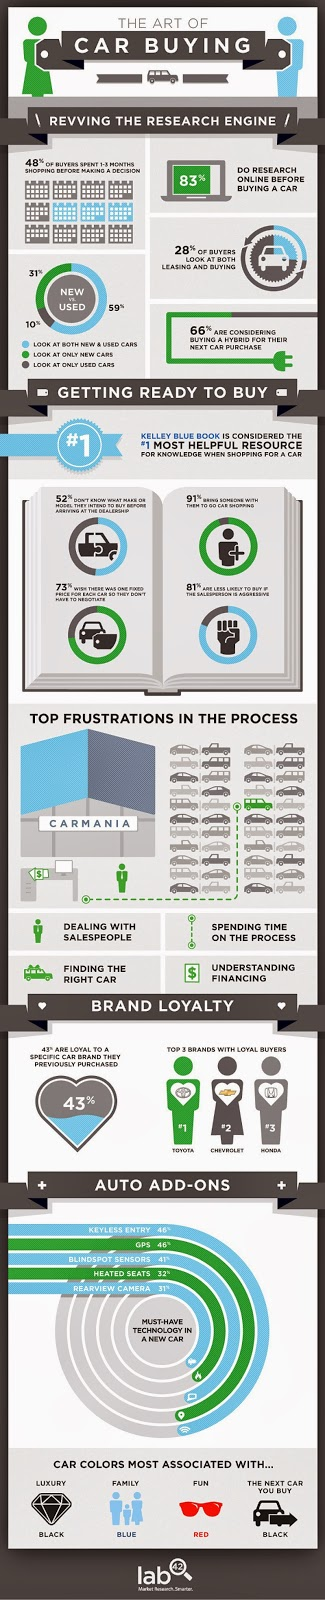 Statistics about the process of buying a car